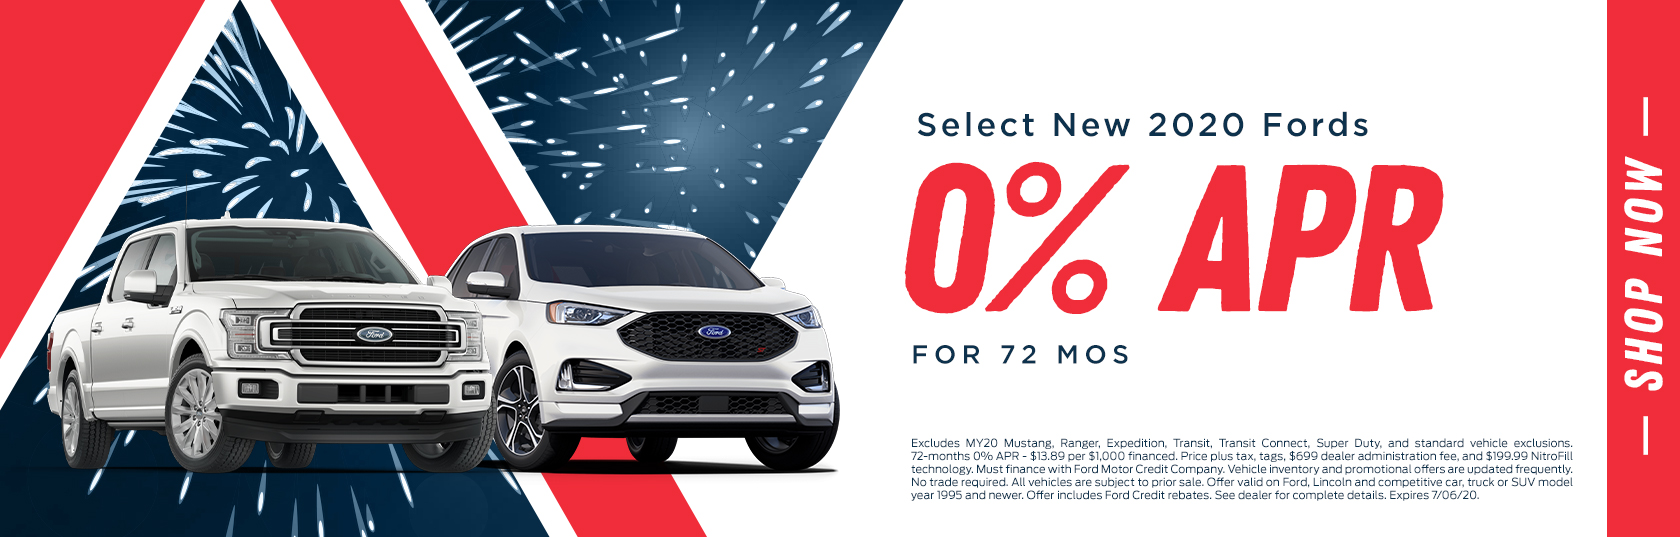 Select New 2020 Fords 0% APR for 72 Months